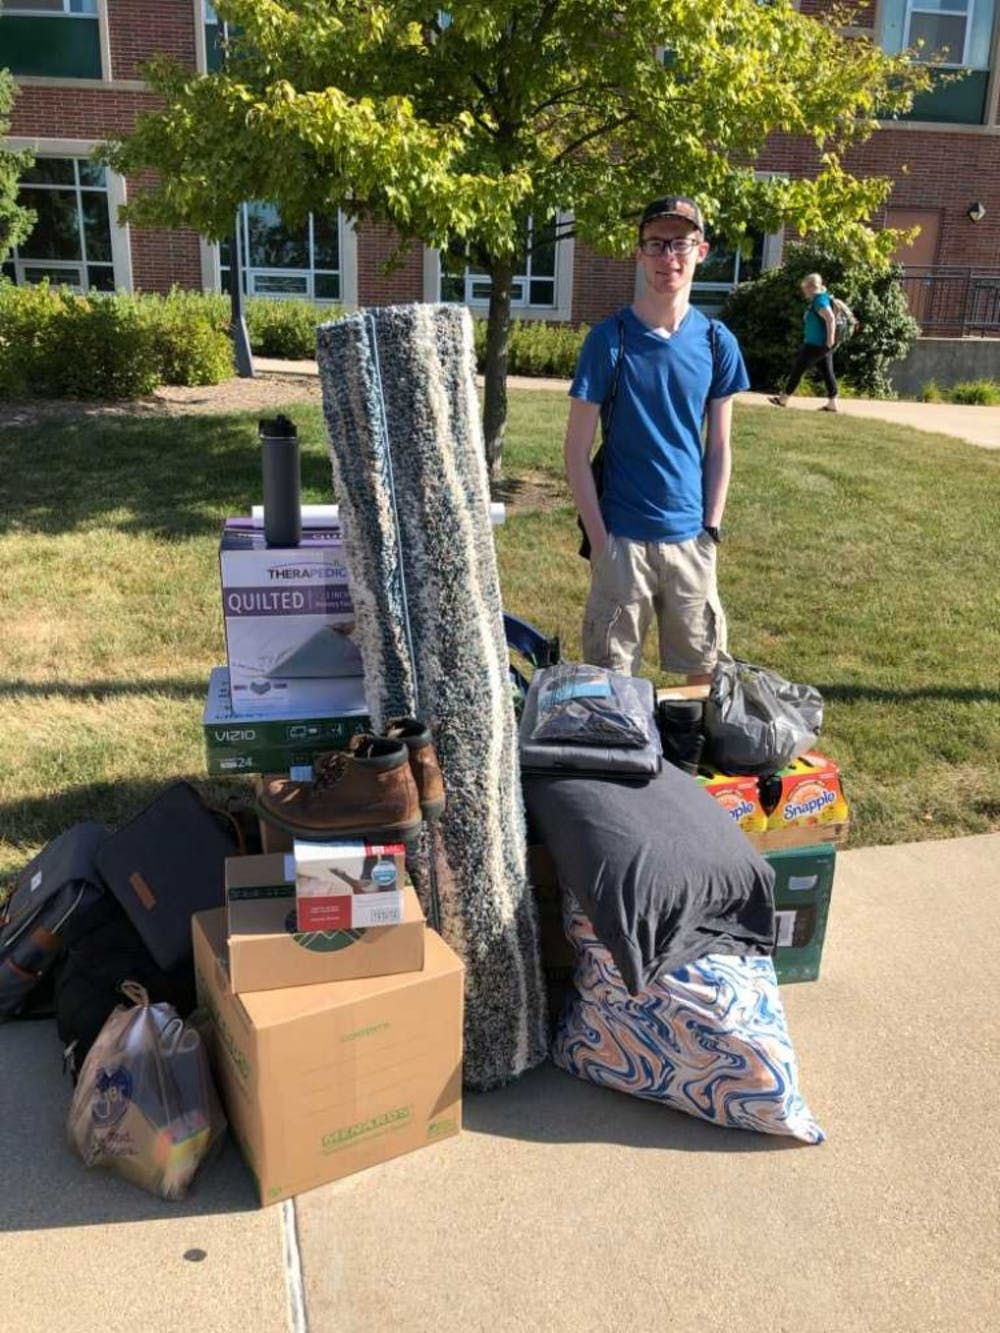 <p>Joshua Smith on move in day August 11, 2019. Photo provided.</p>